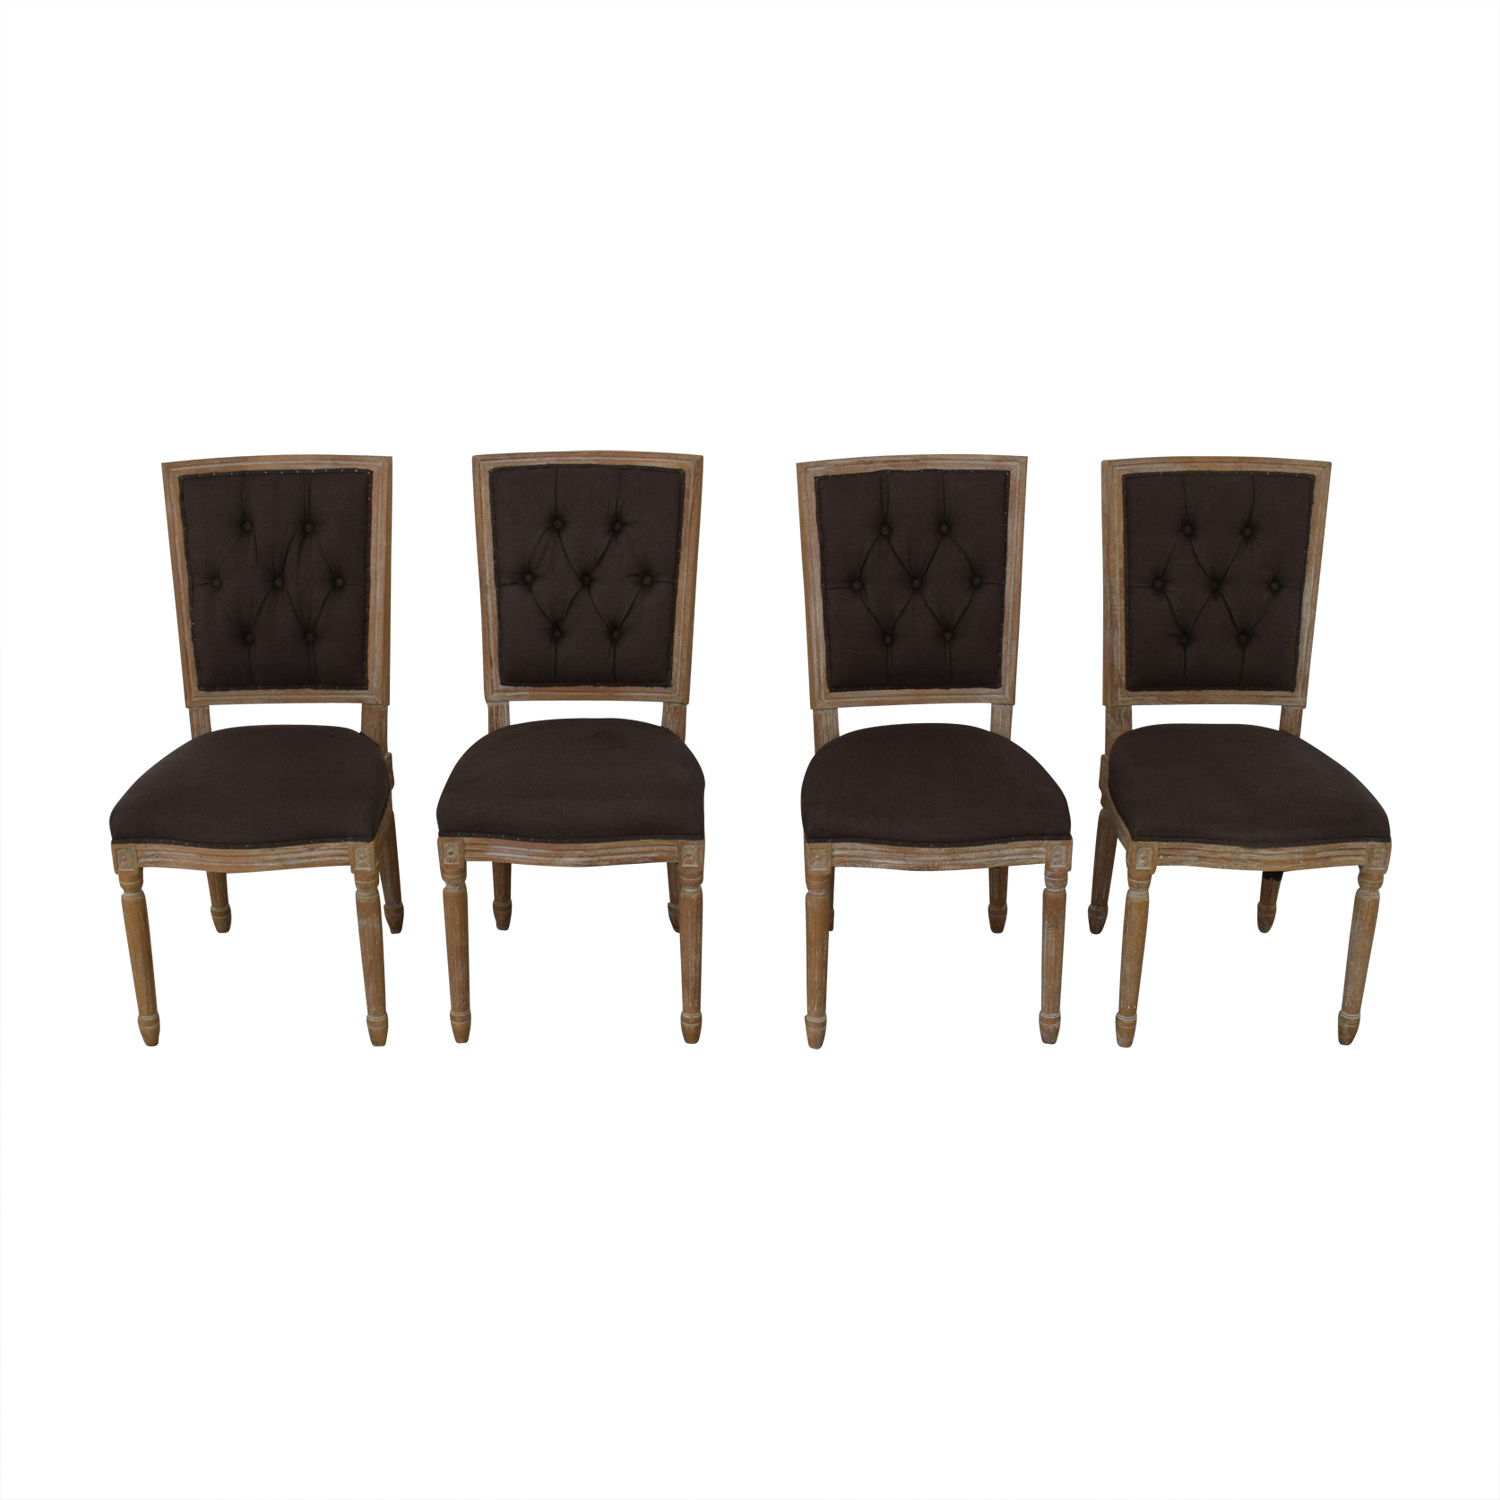 Orient Express Furniture Orient Express Furniture Elton Dining Chairs for sale